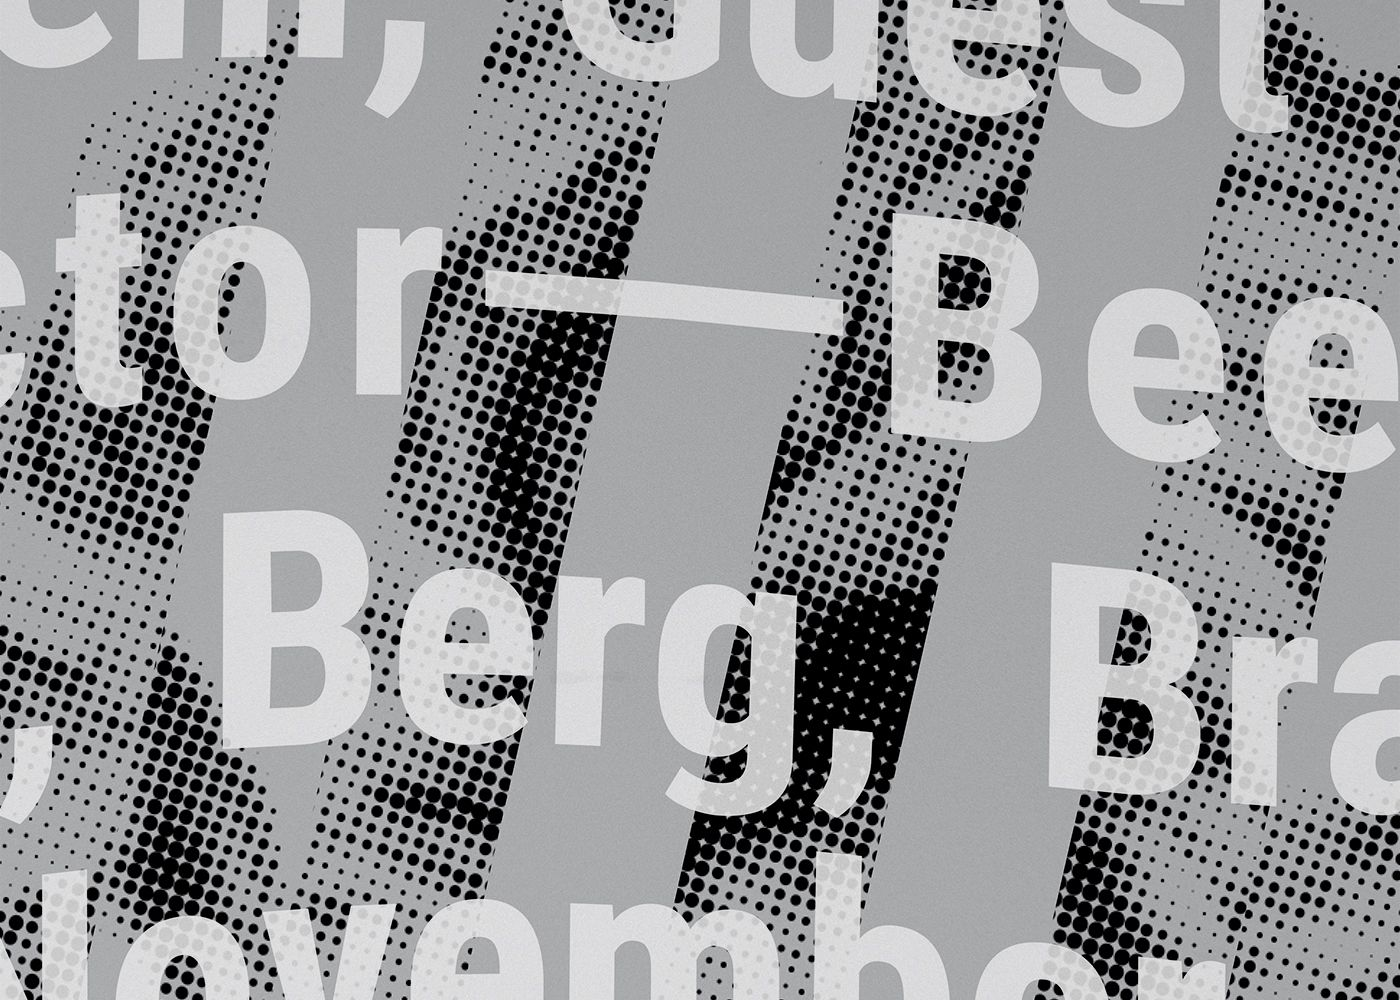 Detail of poster for Three Viennese Bees: collaged images of Beethoven, Berg, and Brahms on a gray background, overlaid with wavy white typography.